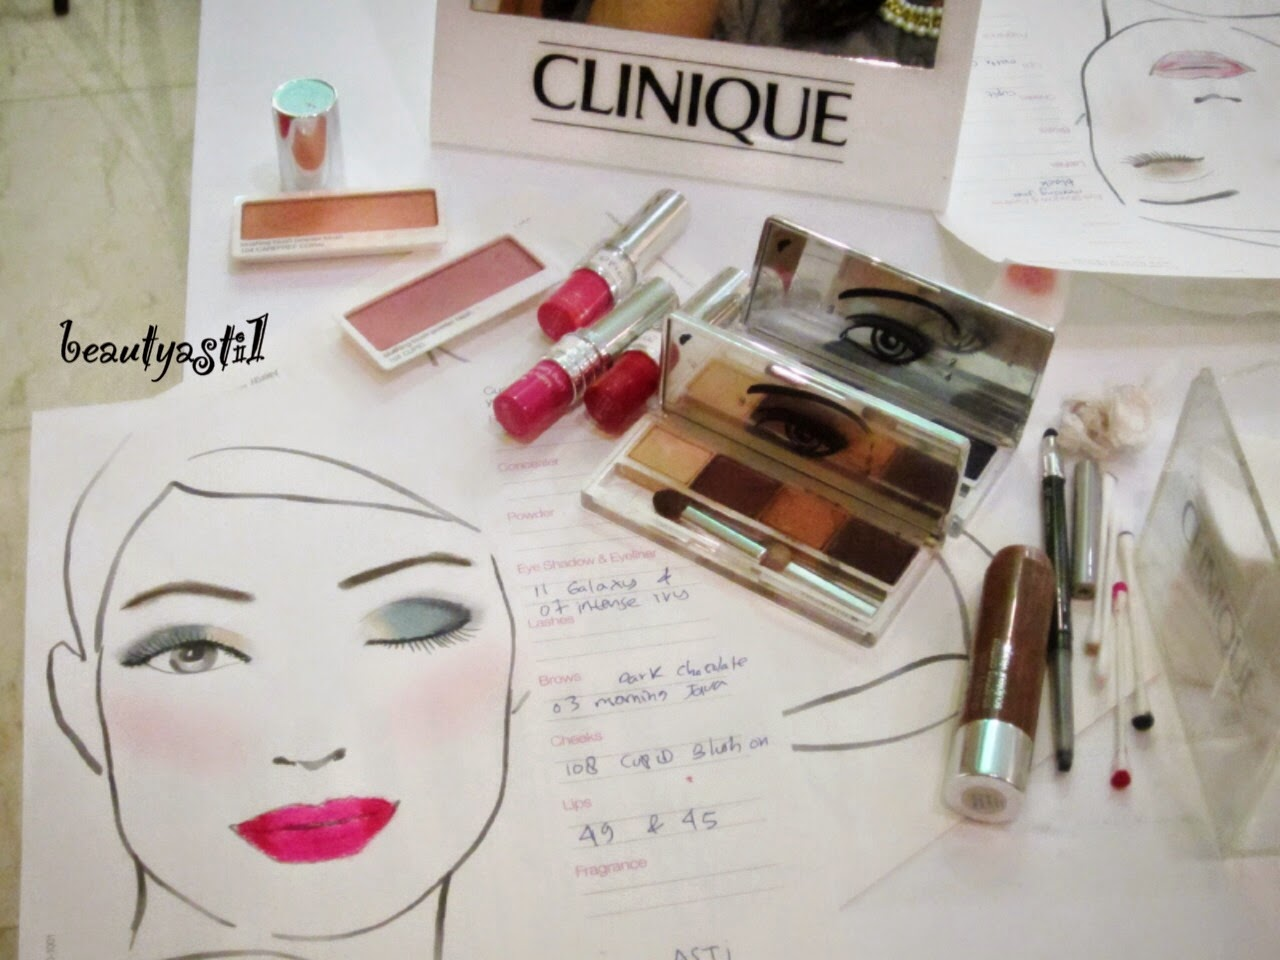 clinique-face-chart-by-beautyasti1.jpg